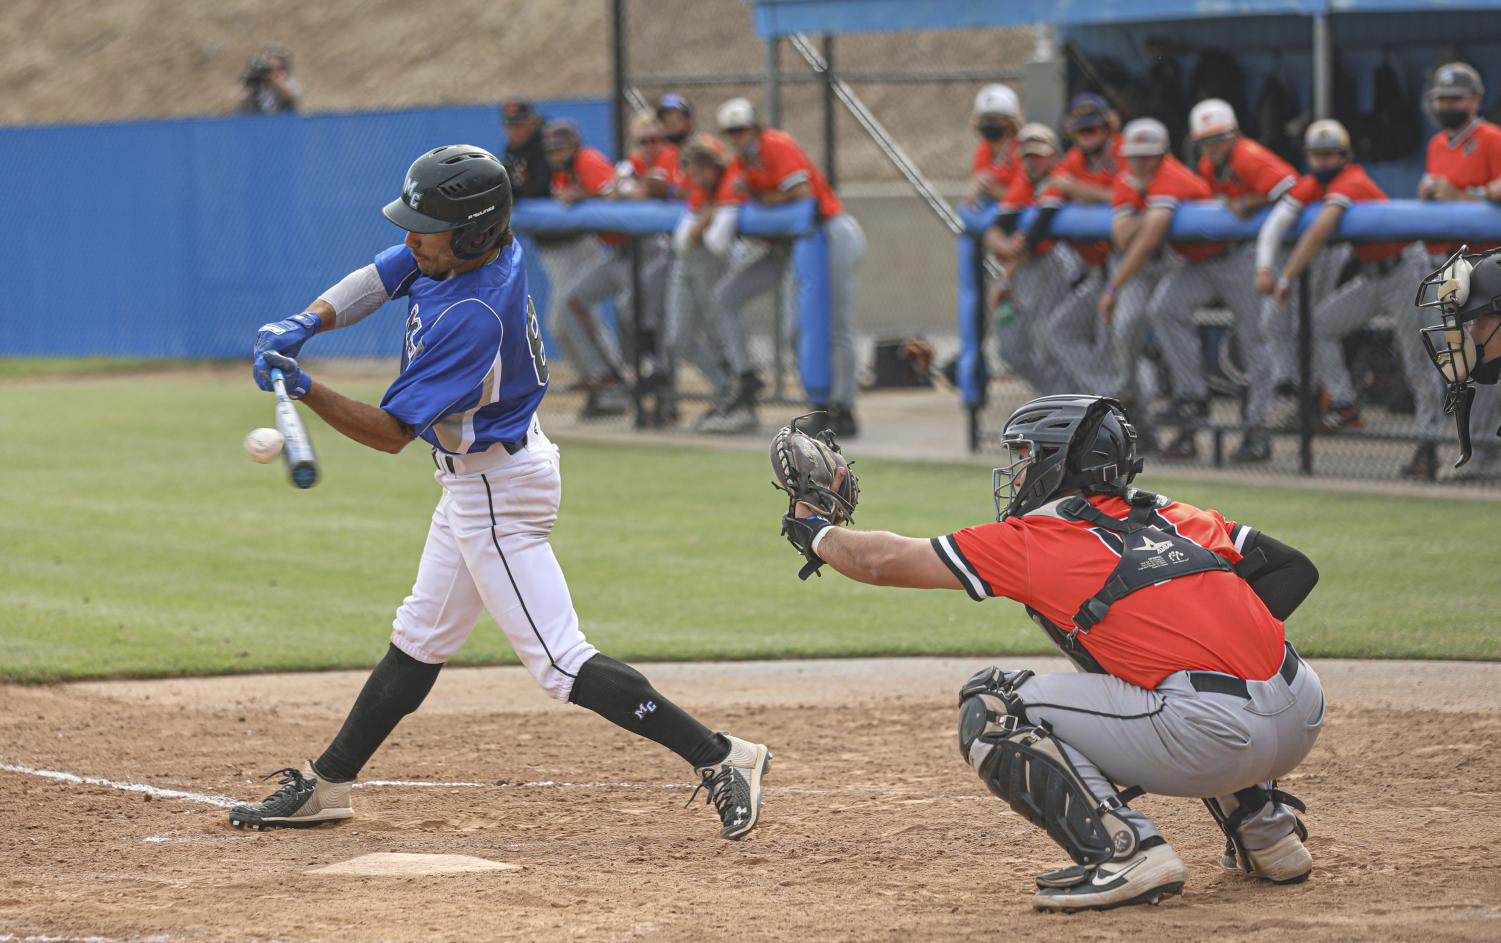 Nate Martinez makes contact with a pitch during the second game of the double header against the Ventura College Pirates on Saturday, May 1, 2021 in Moorpark, CA.